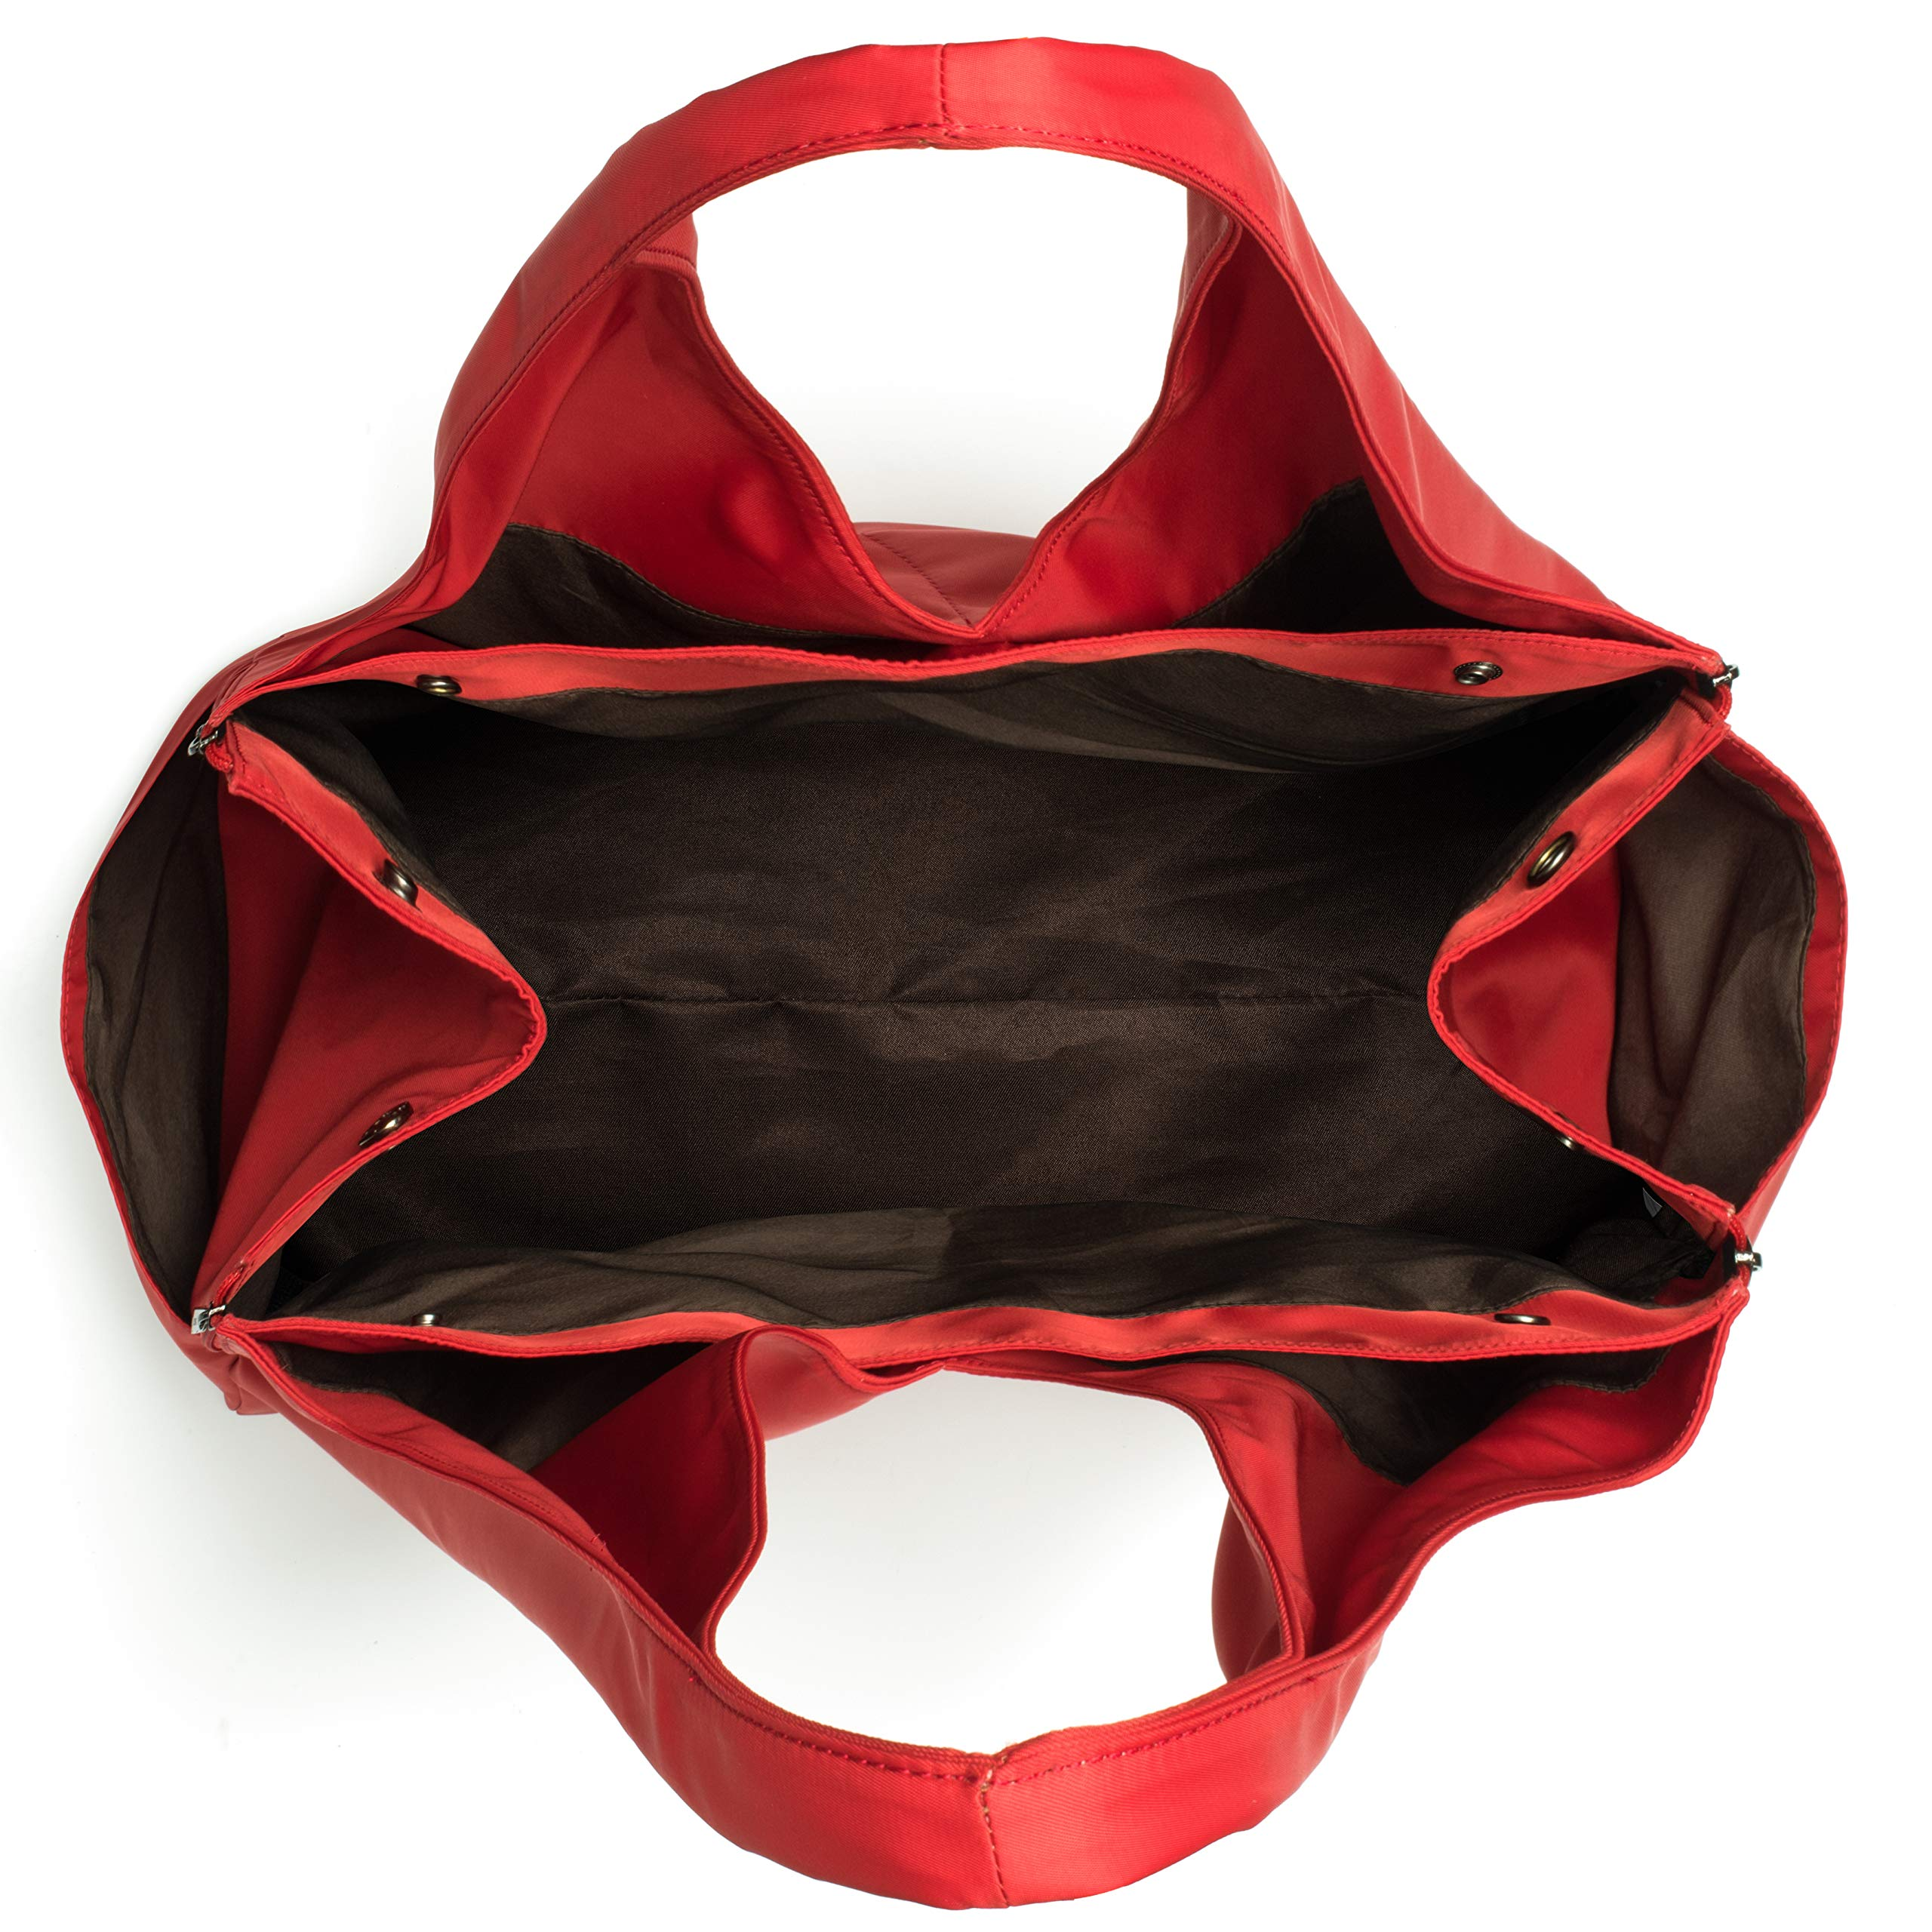 Miso Pup Shell Tote for use Interchangeable Base Pet Carrier (Shell Tote) (Shell Tote ONLY for USE with Base PET Carrier, Sporty RED) by Miso Pup